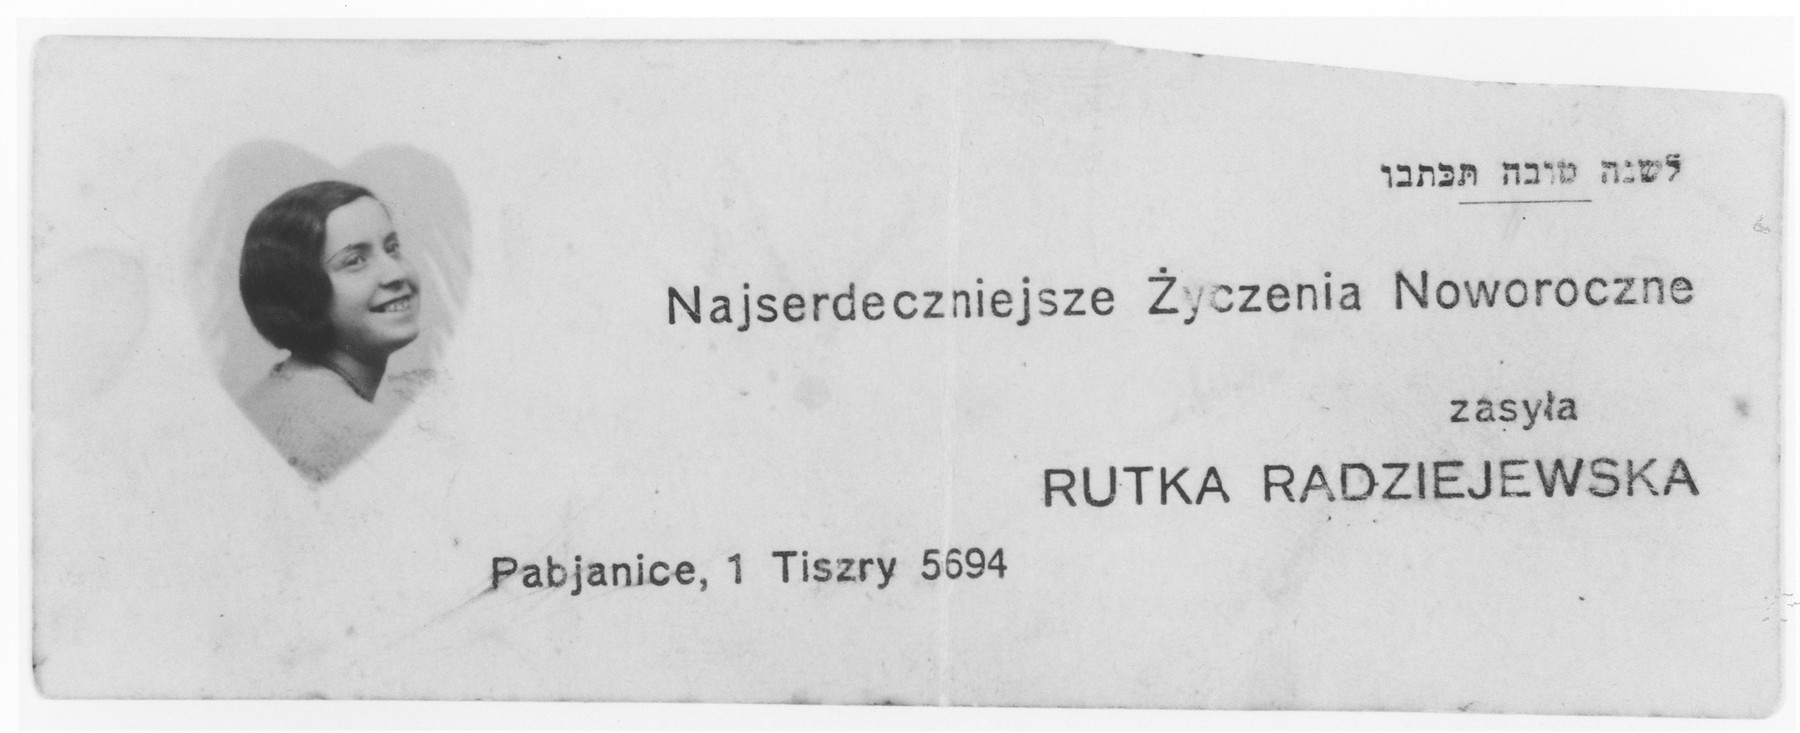 Personalized Jewish New Years card in Polish and Hebrew sent by Rutka Radziejewska from Pabianice, Poland.  Rutka is the niece of Chaja Sura Lajbman (Chaja's brother's daughter).